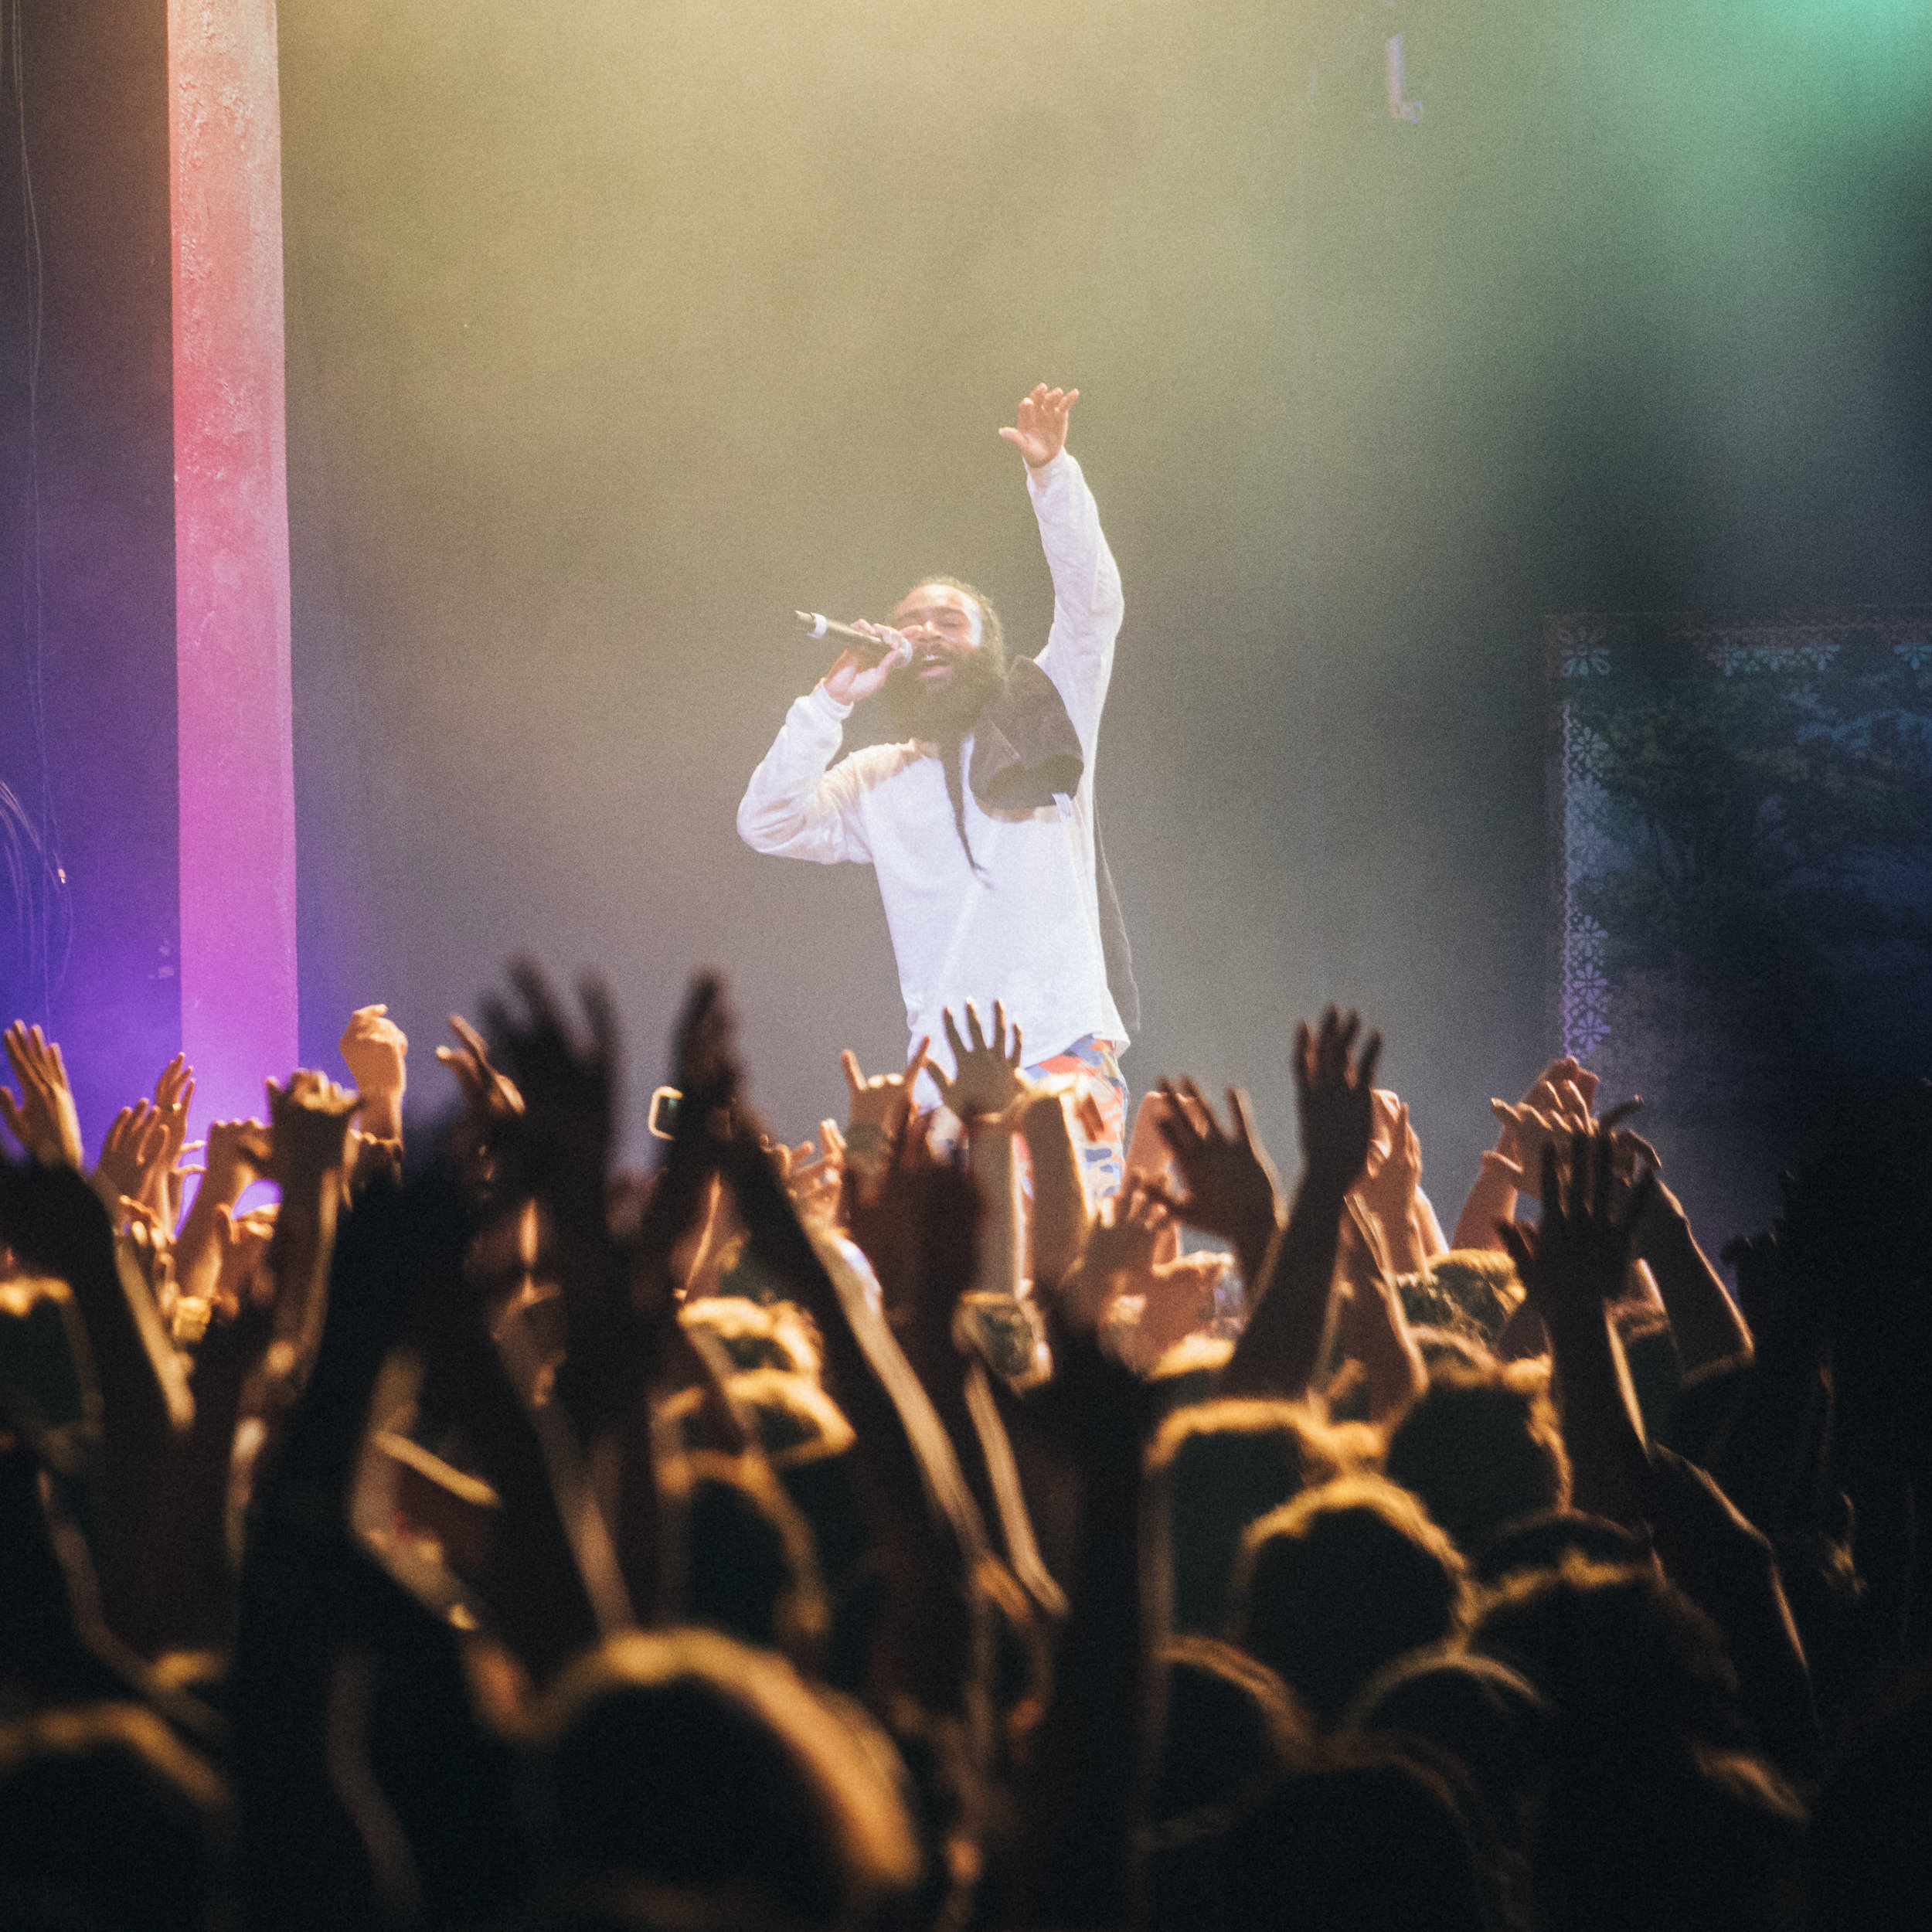 The  Flatbush Zombies  with  Kirk Knight  &  Nyck Caution  at  Astra  in  Berlin, Germany